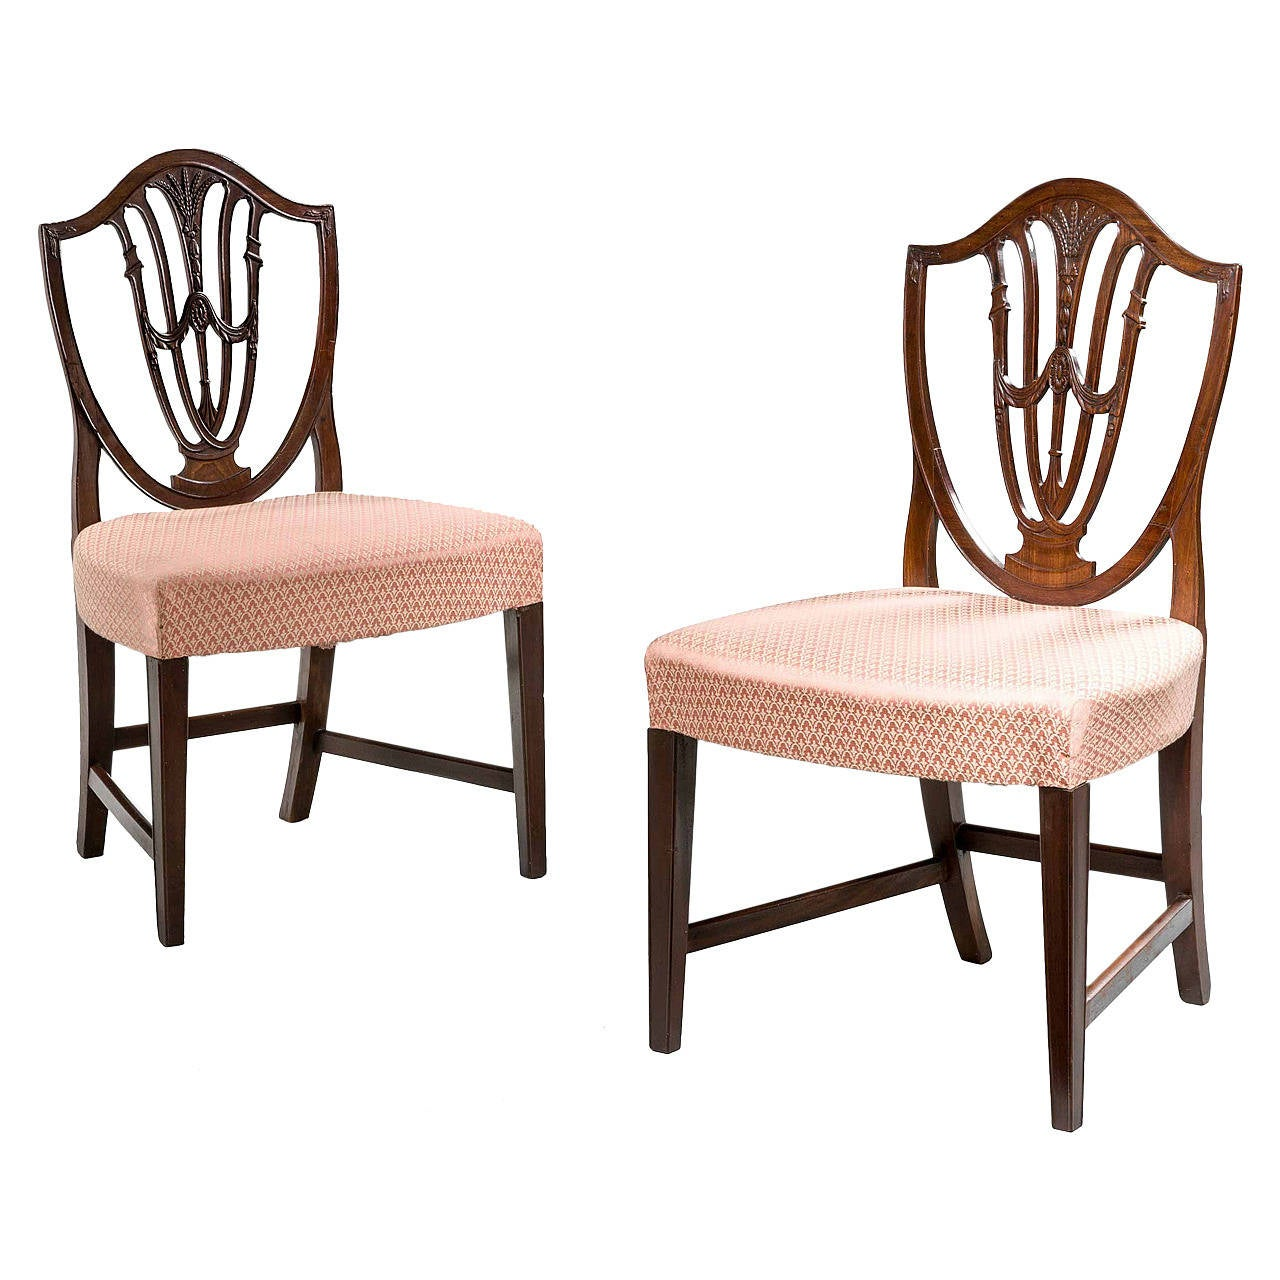 Pair Of George Iii Hepplewhite Chairs For Sale At 1stdibs